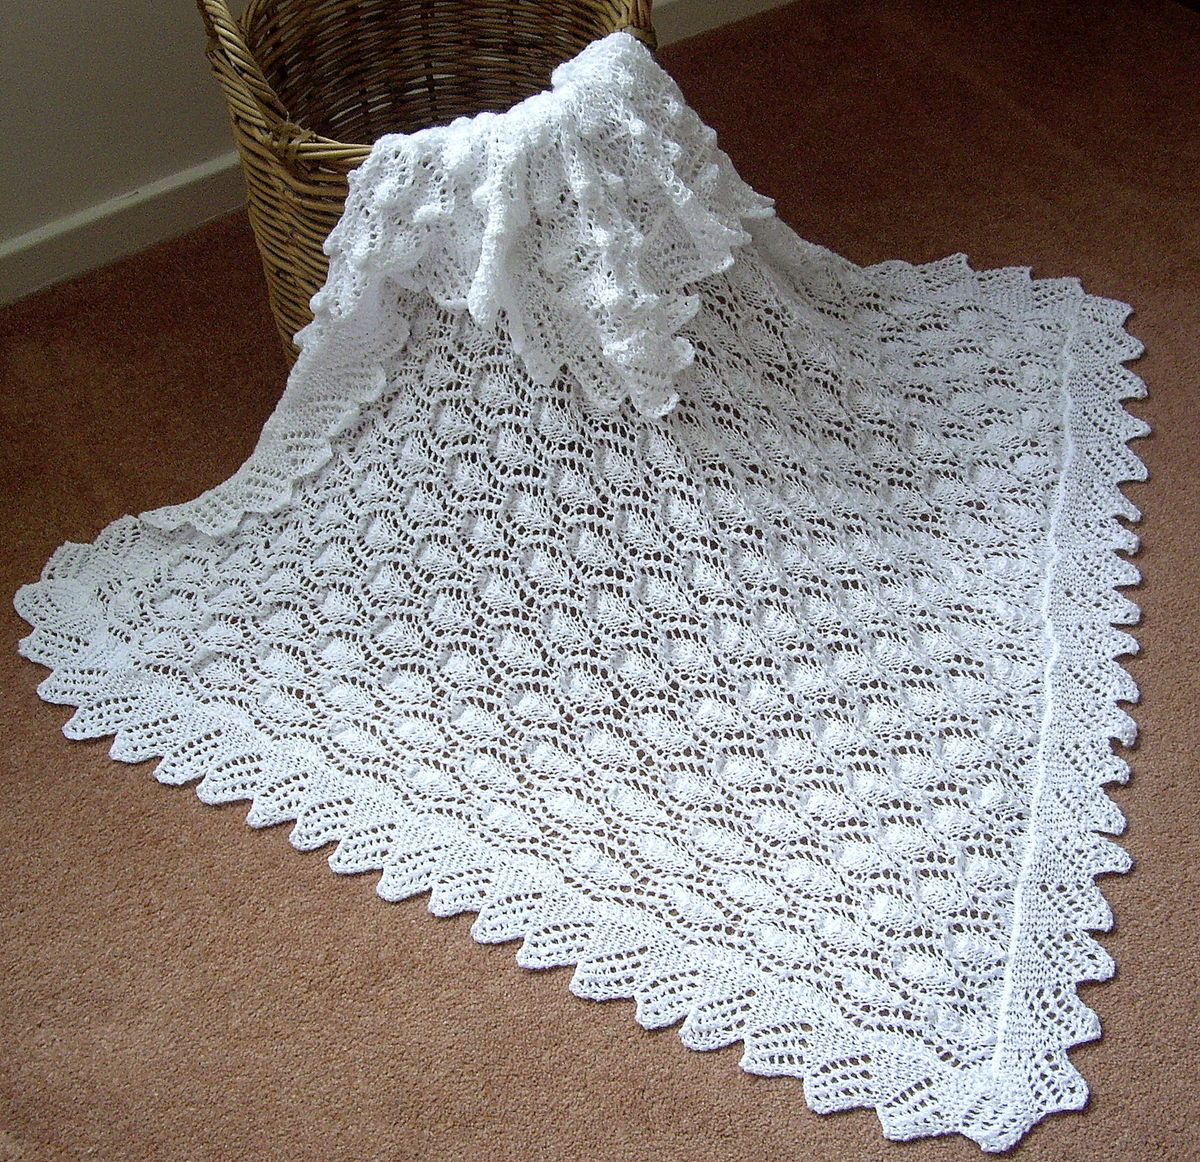 Hand Knitting Patterns For Babies : Beautiful Baby Shawl Blanket Hand Knitted in A Lace Medallion Pattern baby ...